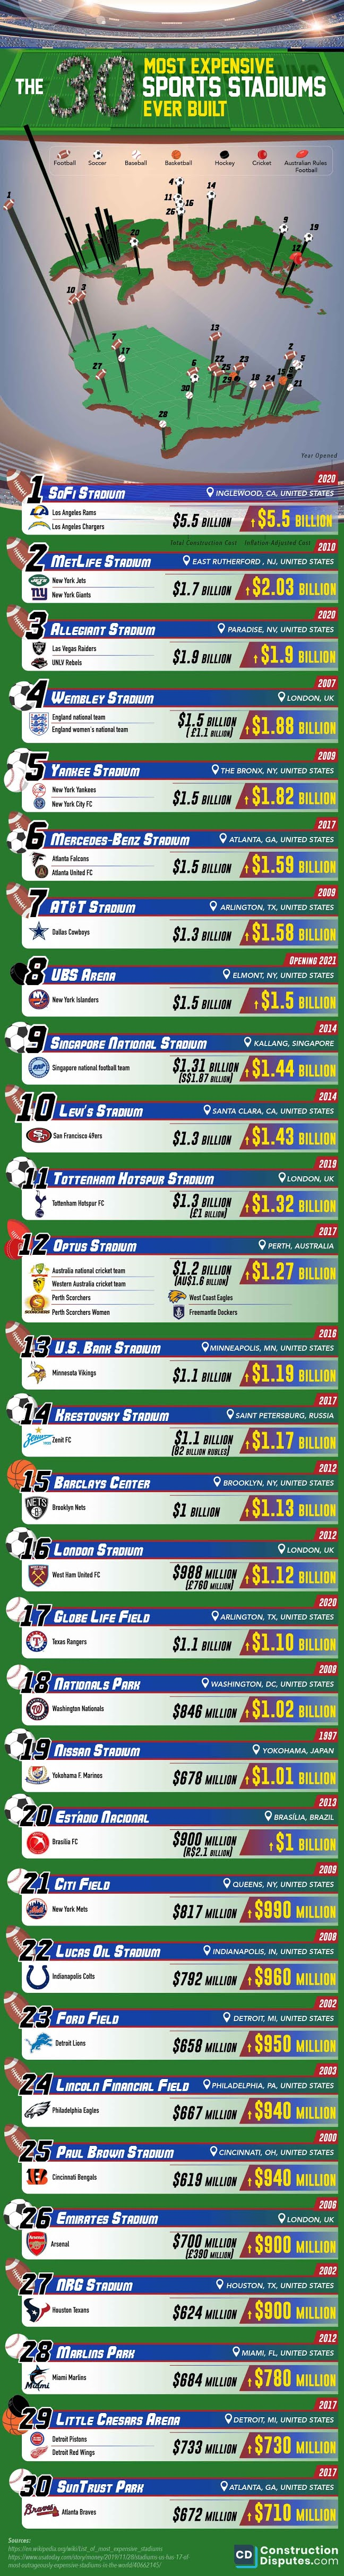 the-30-most-expensive-sports-stadiums-ever-built-infographic